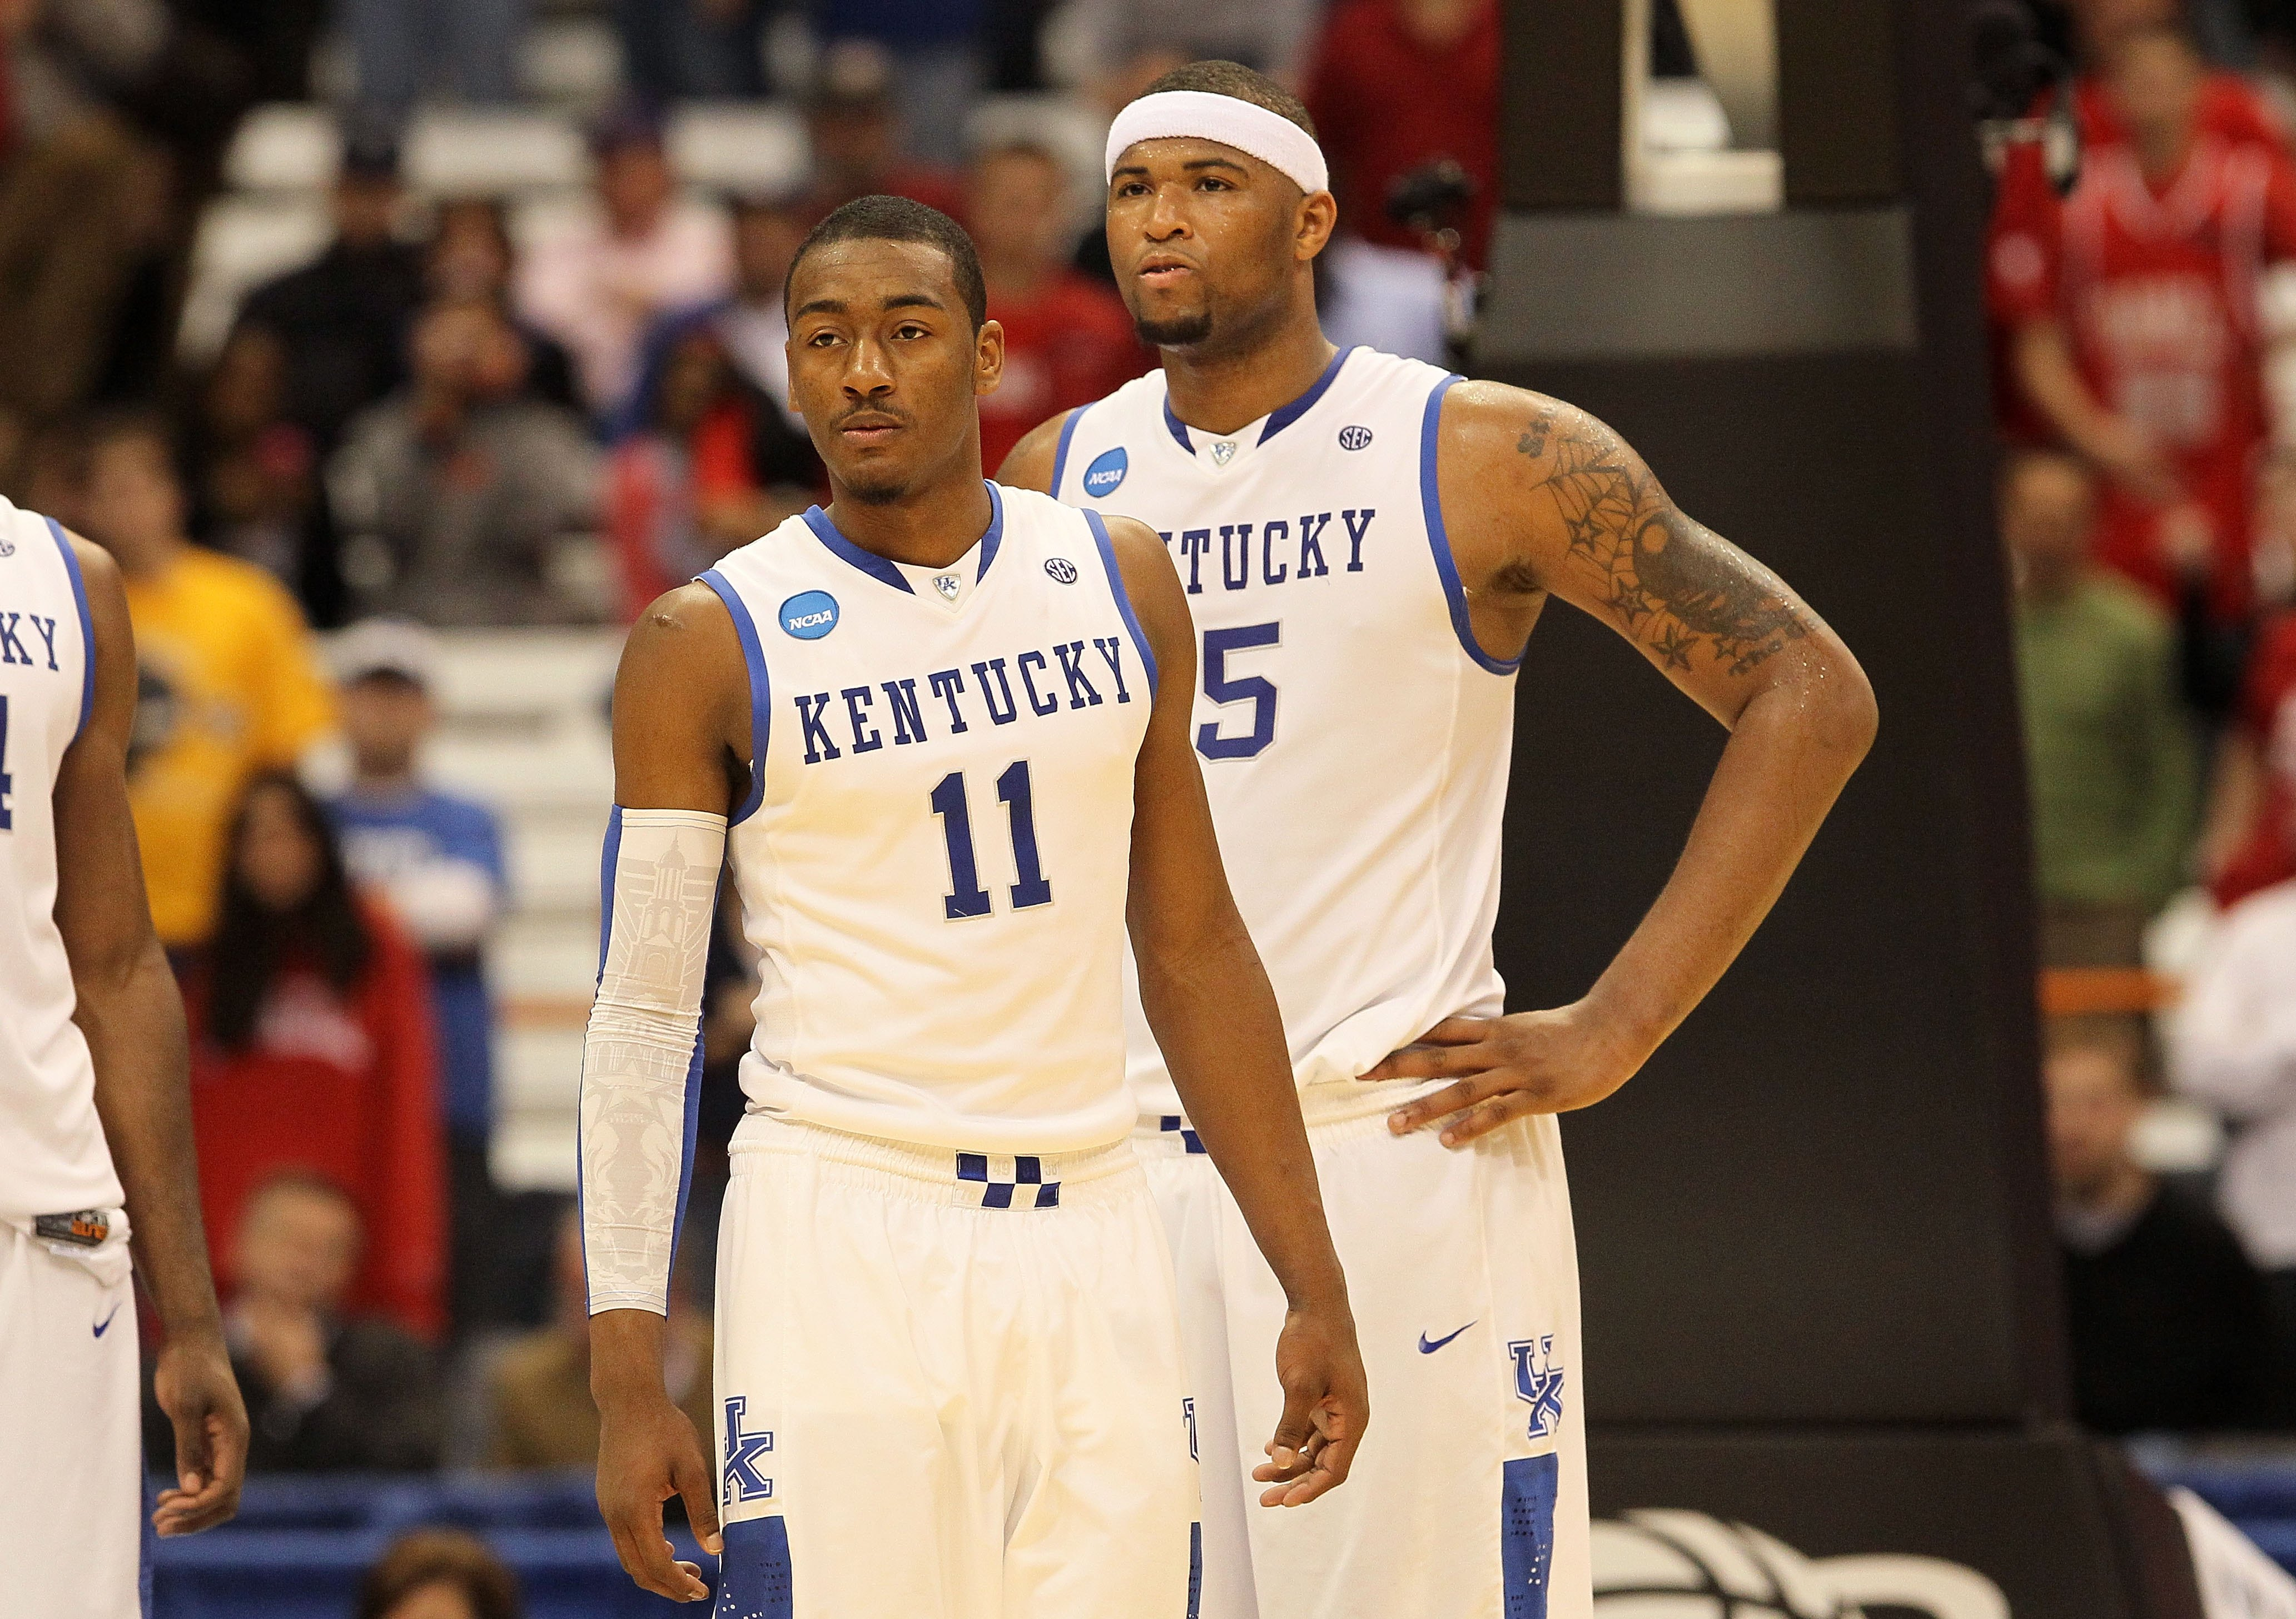 SYRACUSE, NY - MARCH 25:  (L-R) John Wall #11 and DeMarcus Cousins #15 of the Kentucky Wildcats look on against the Cornell Big Red during the east regional semifinal of the 2010 NCAA men's basketball tournament at the Carrier Dome on March 25, 2010 in Sy